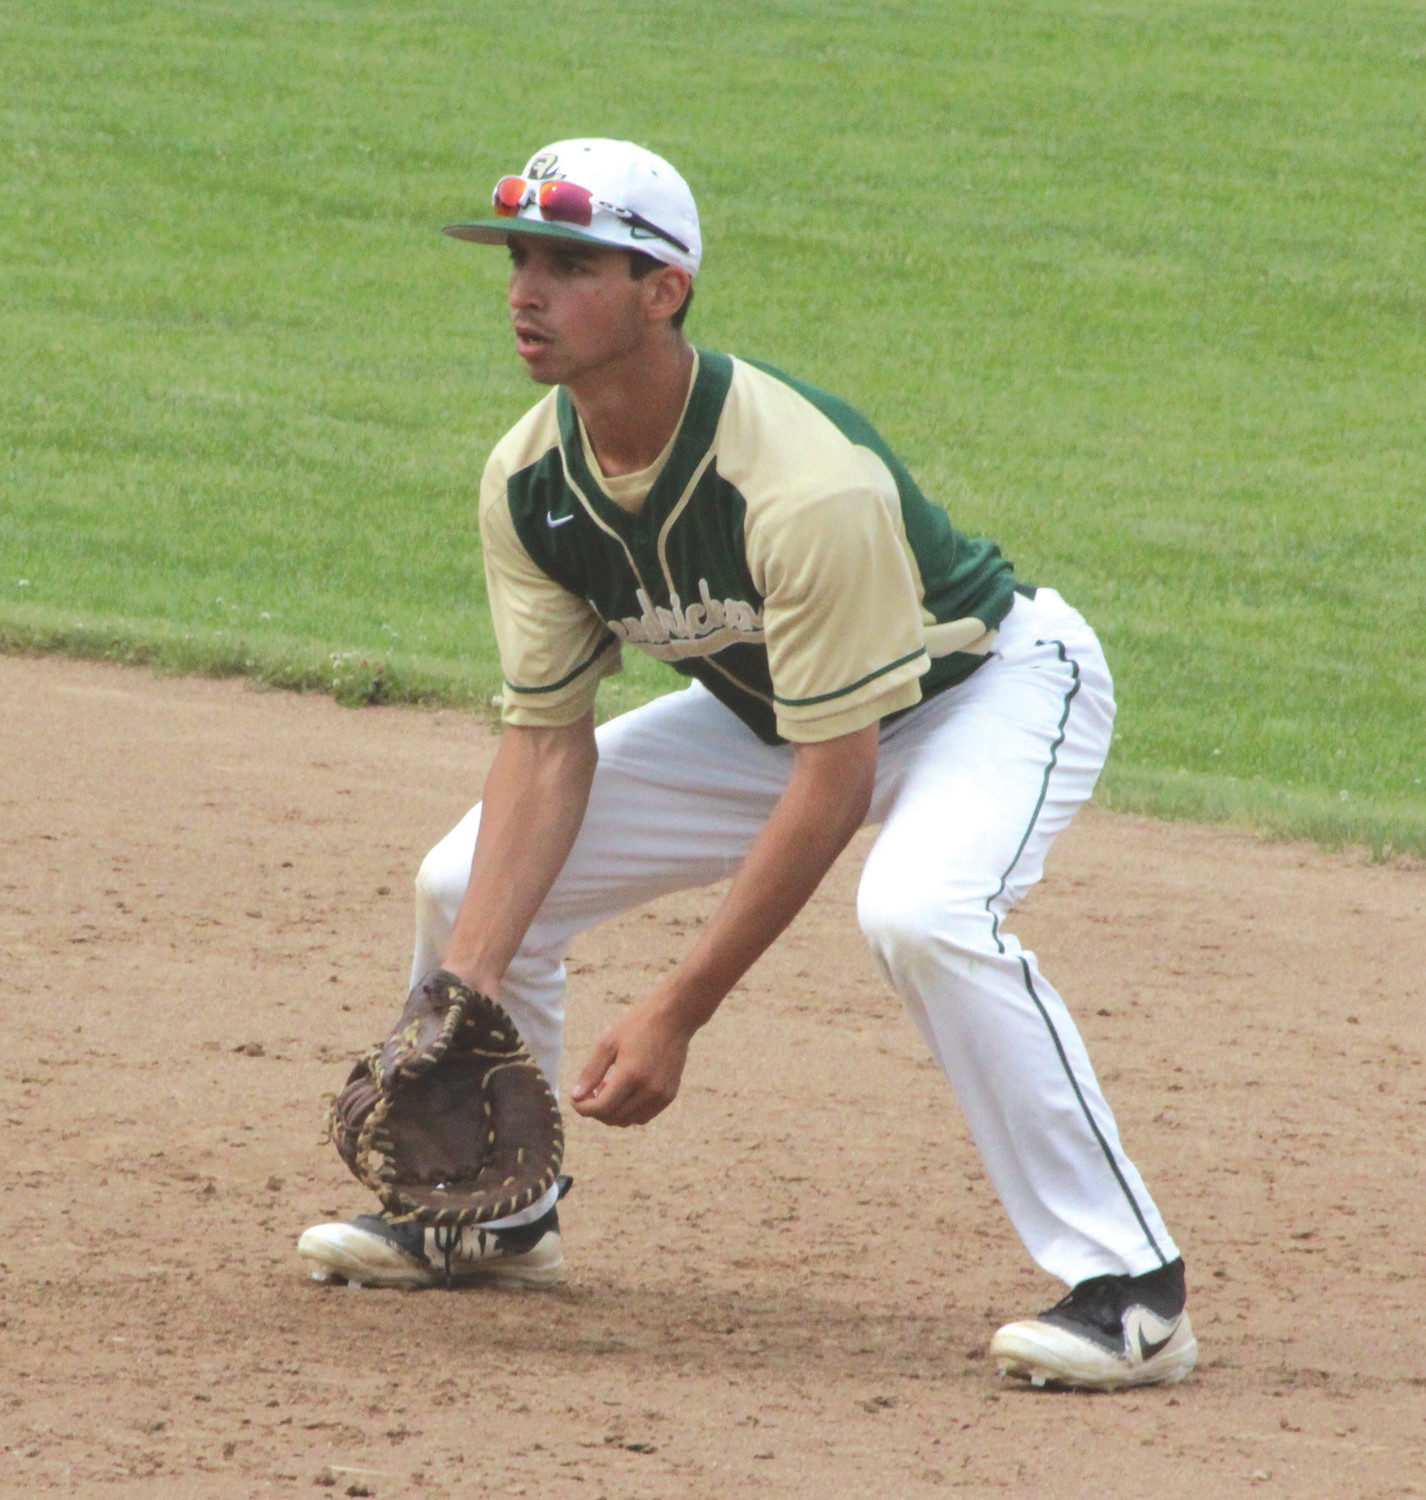 PLAYING THE FIELD: Bishop Hendricken's Matt Smaldone prepares to field a ground ball at first base against Conventry on Saturday afternoon at McCoy Stadium during the Division I Pod 1 regional final.